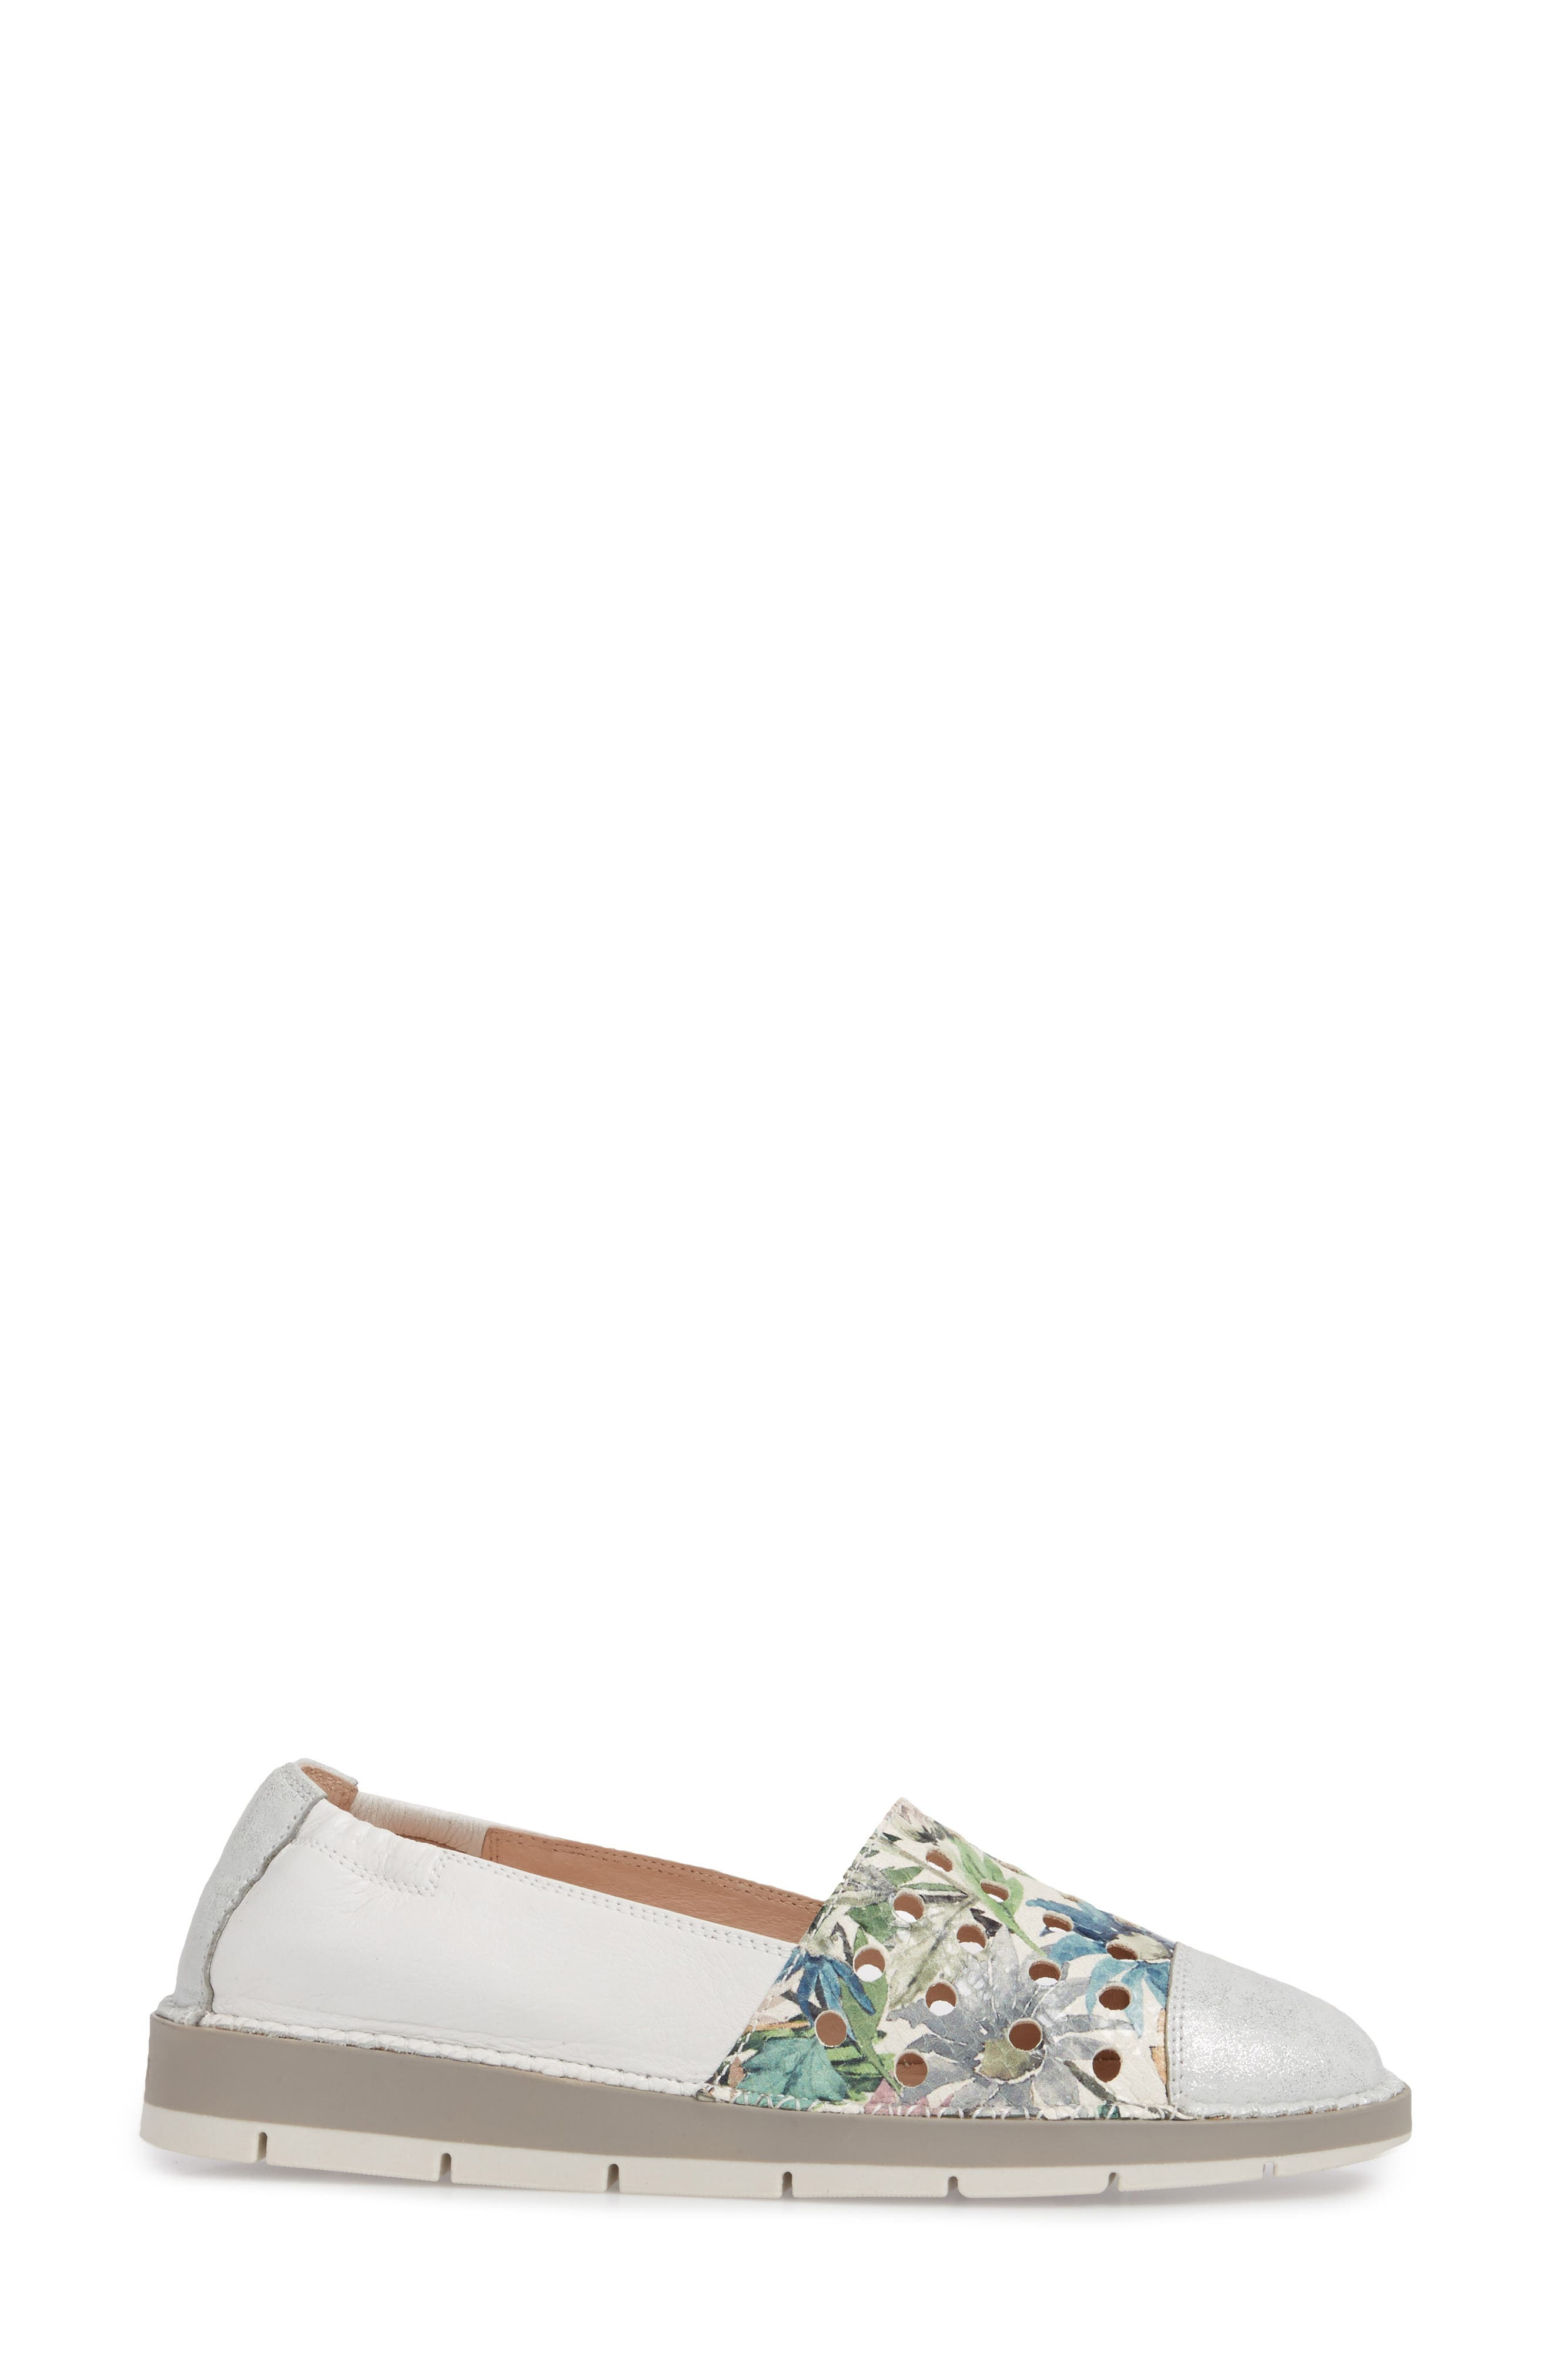 Maiko Flat,                             Alternate thumbnail 3, color,                             STAR SILVER/ BLOSSOM LEATHER